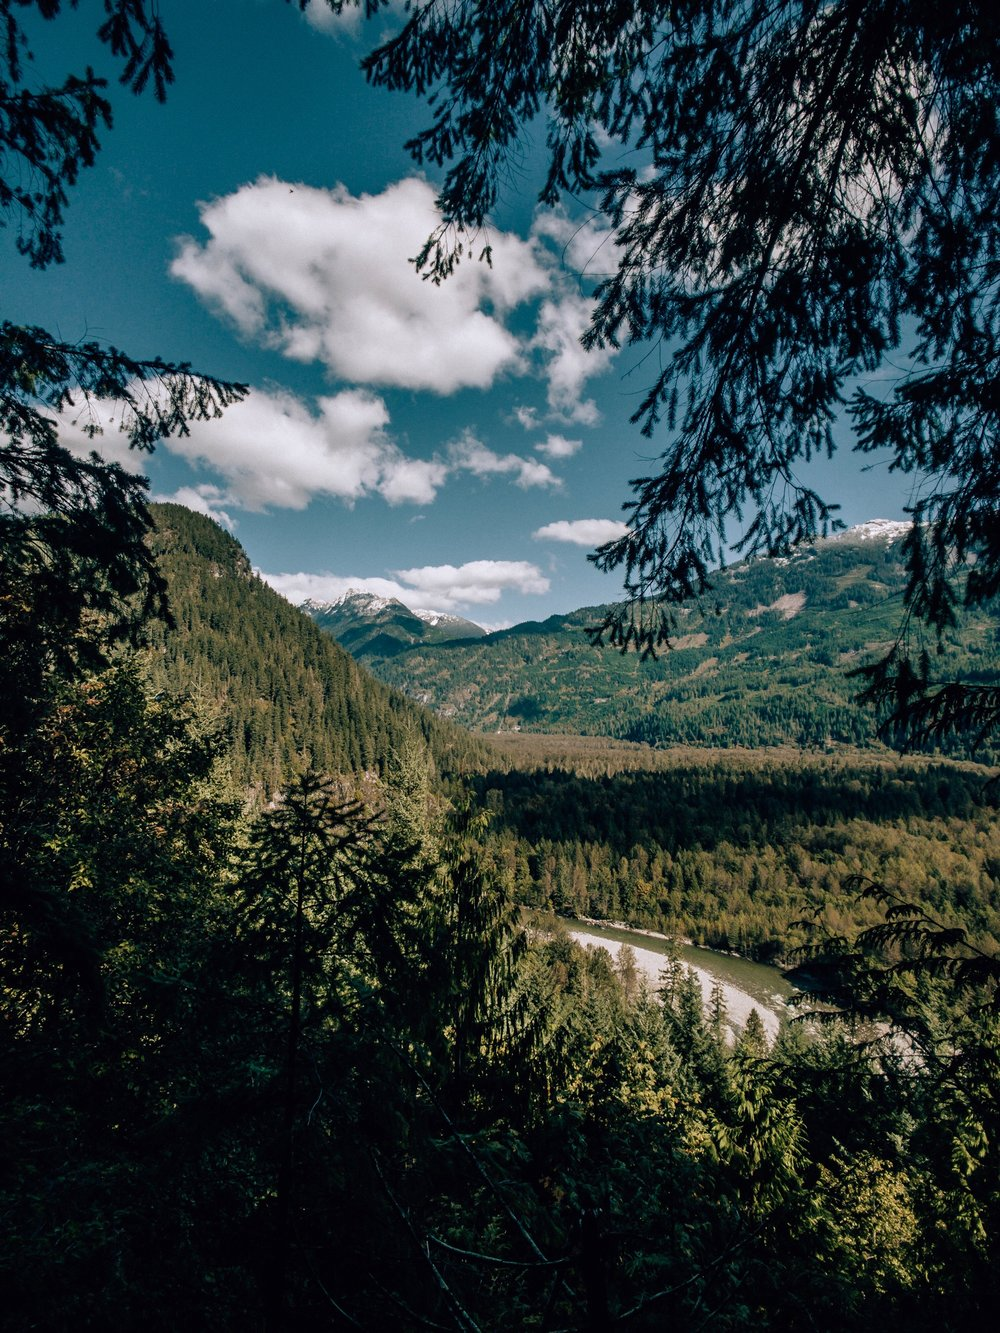 River valley views in Squamish BC near Whistler in summer and fall